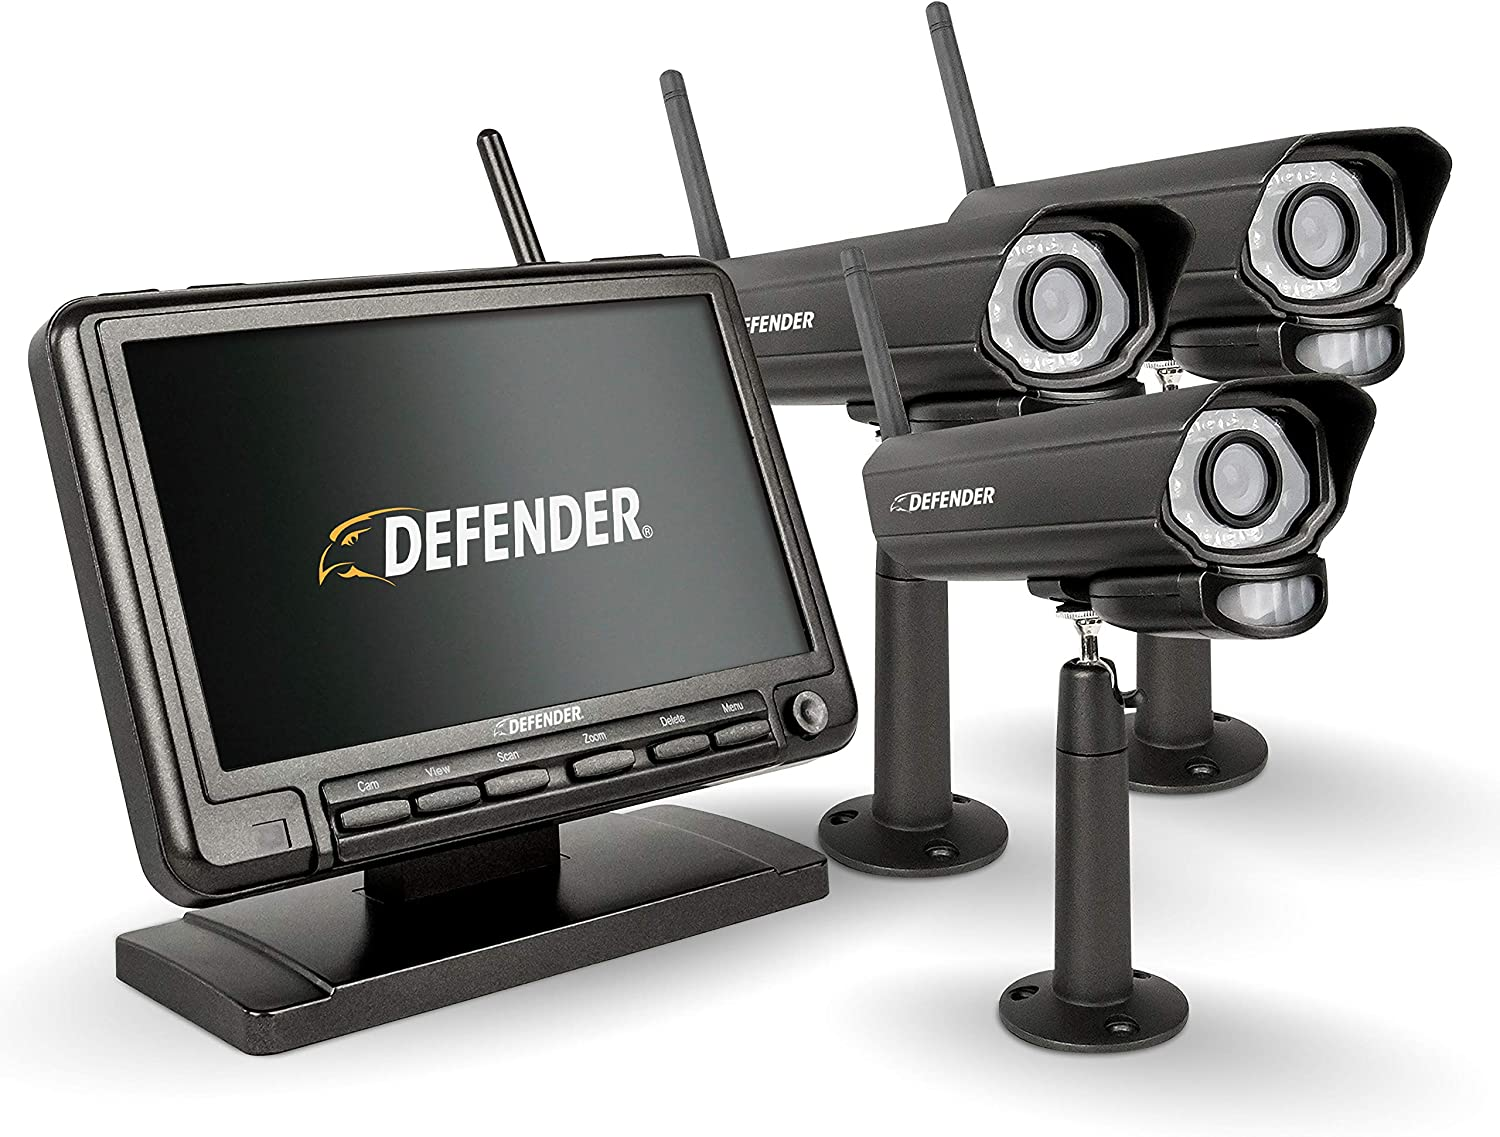 Defender PhoenixM2 Security System - Indoor and Outdoor Wireless Security System Camera with LCD Screen - Business and Home Security System Plug and Play, No WiFi Connection Required (3 Cameras)